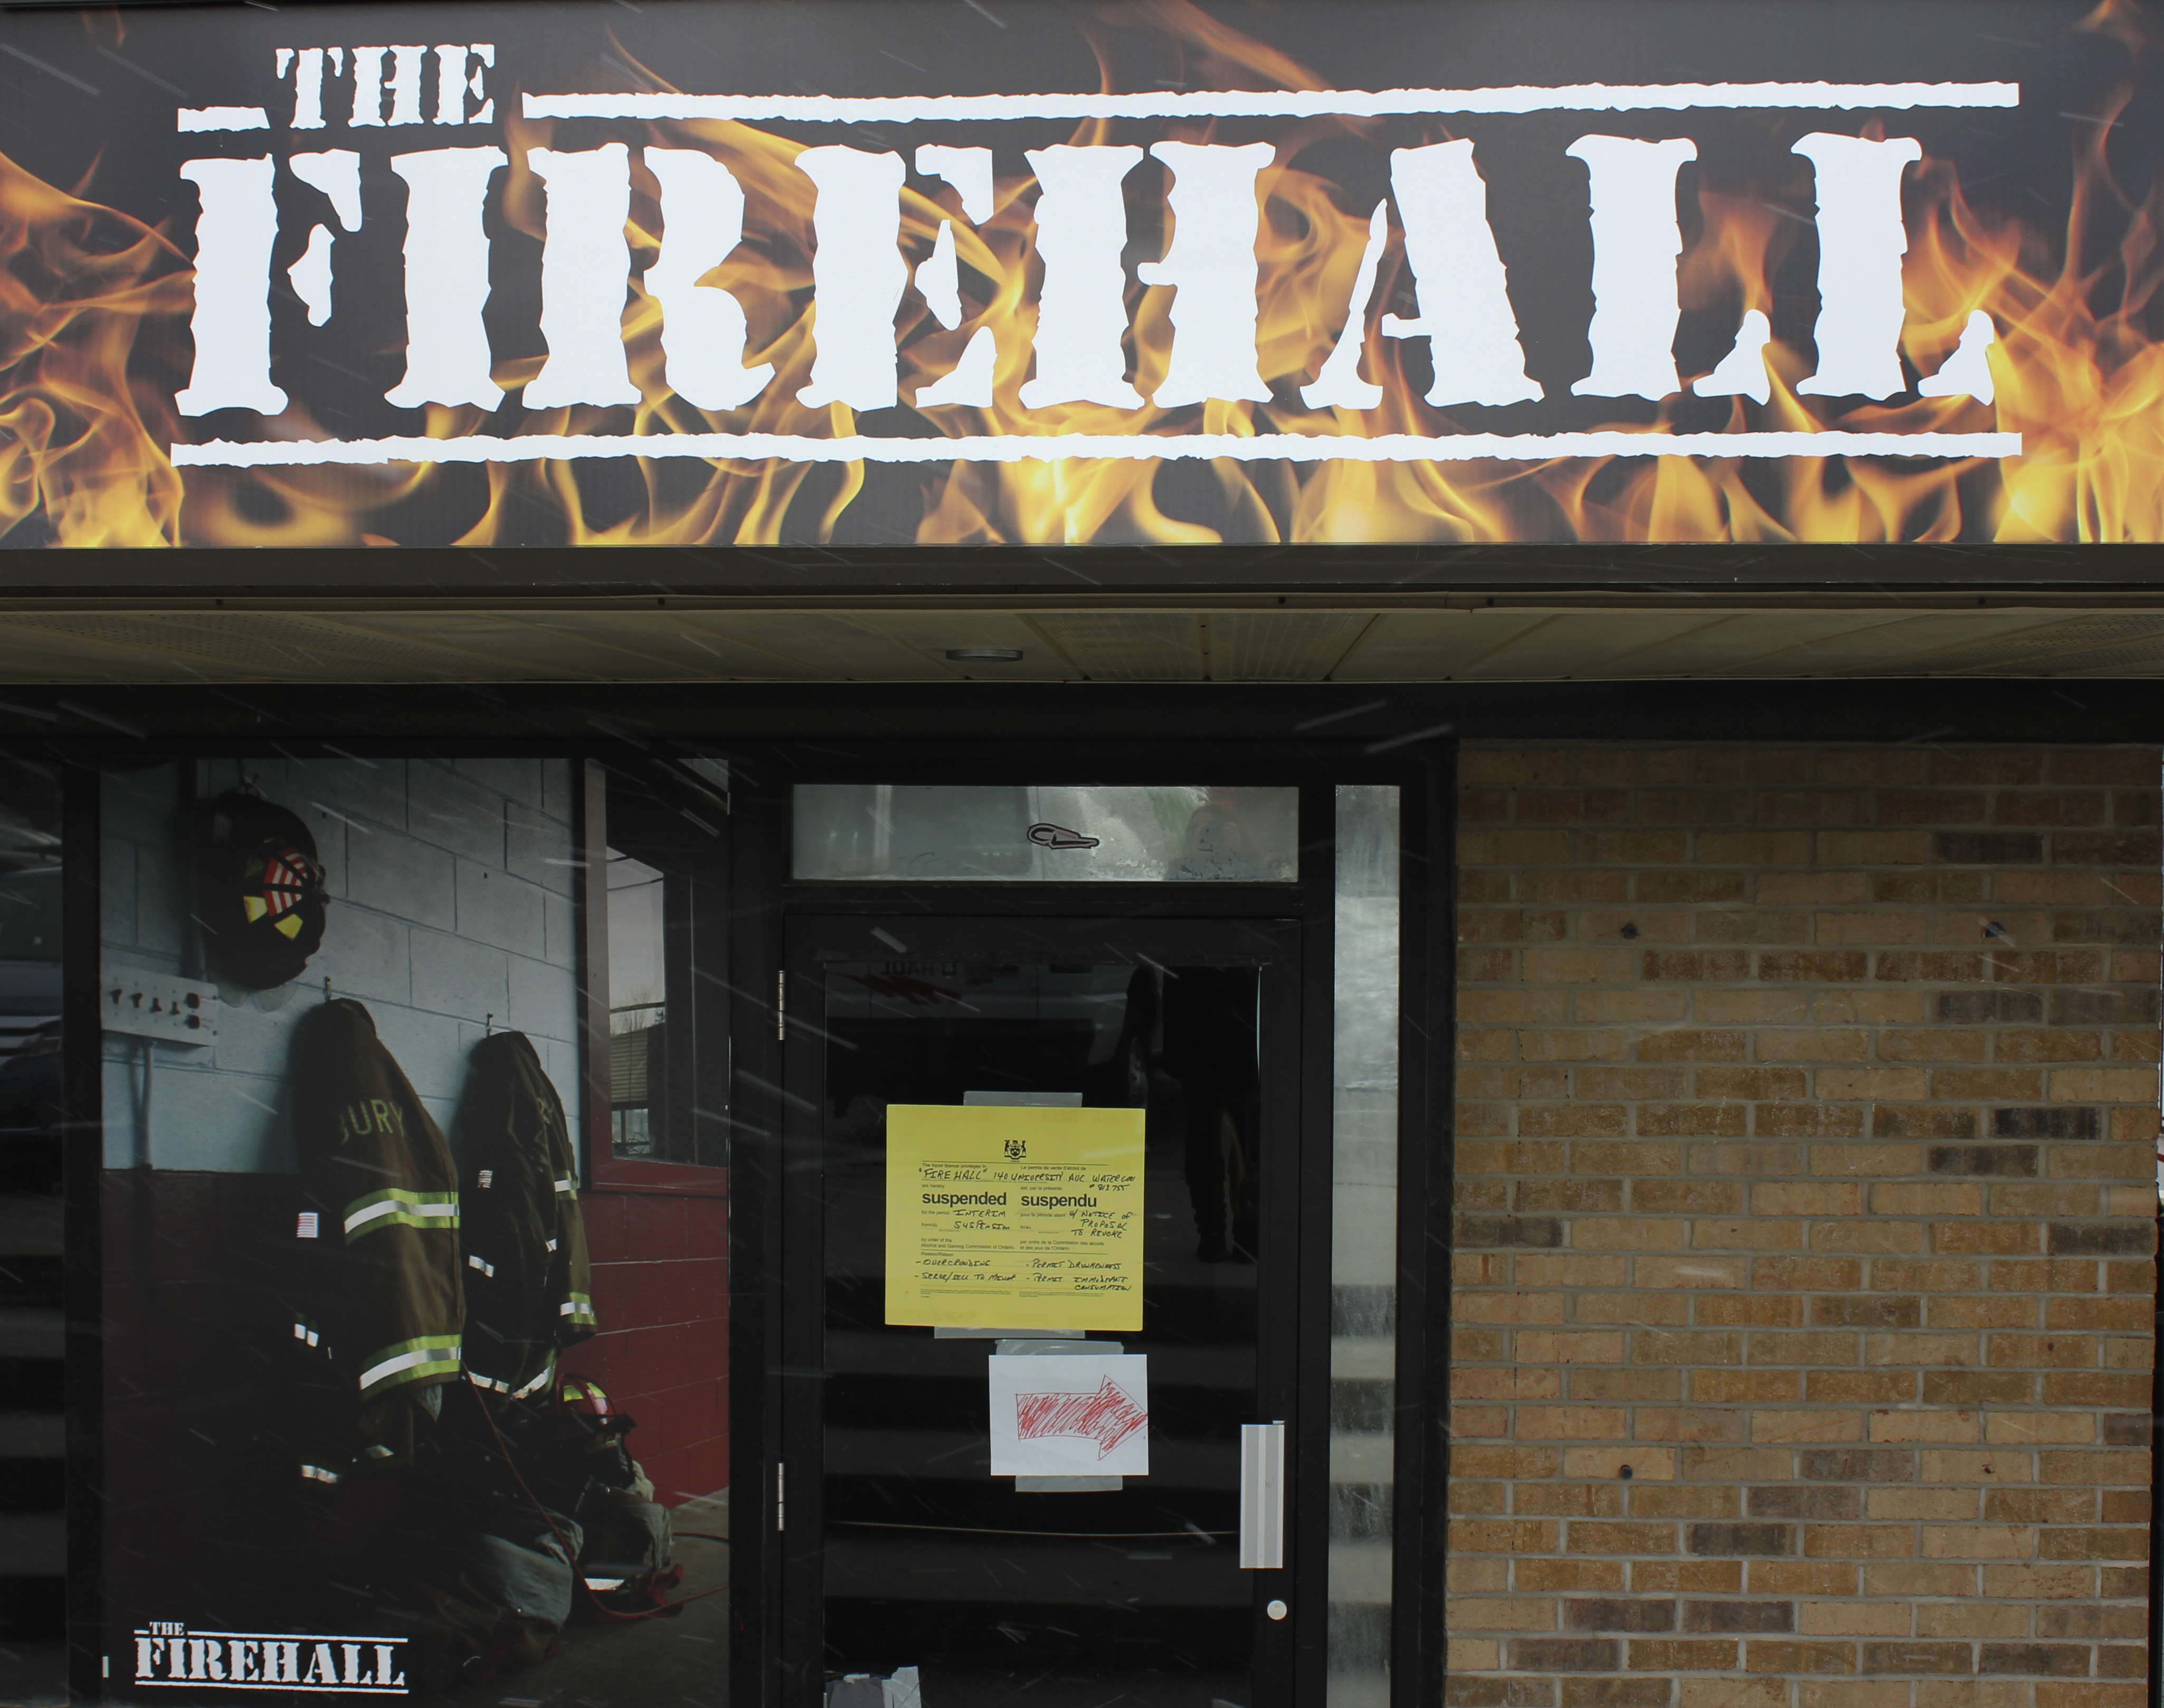 The Firehall is located at a plaza near the University of Waterloo. (Photo by Dana Silvestri)